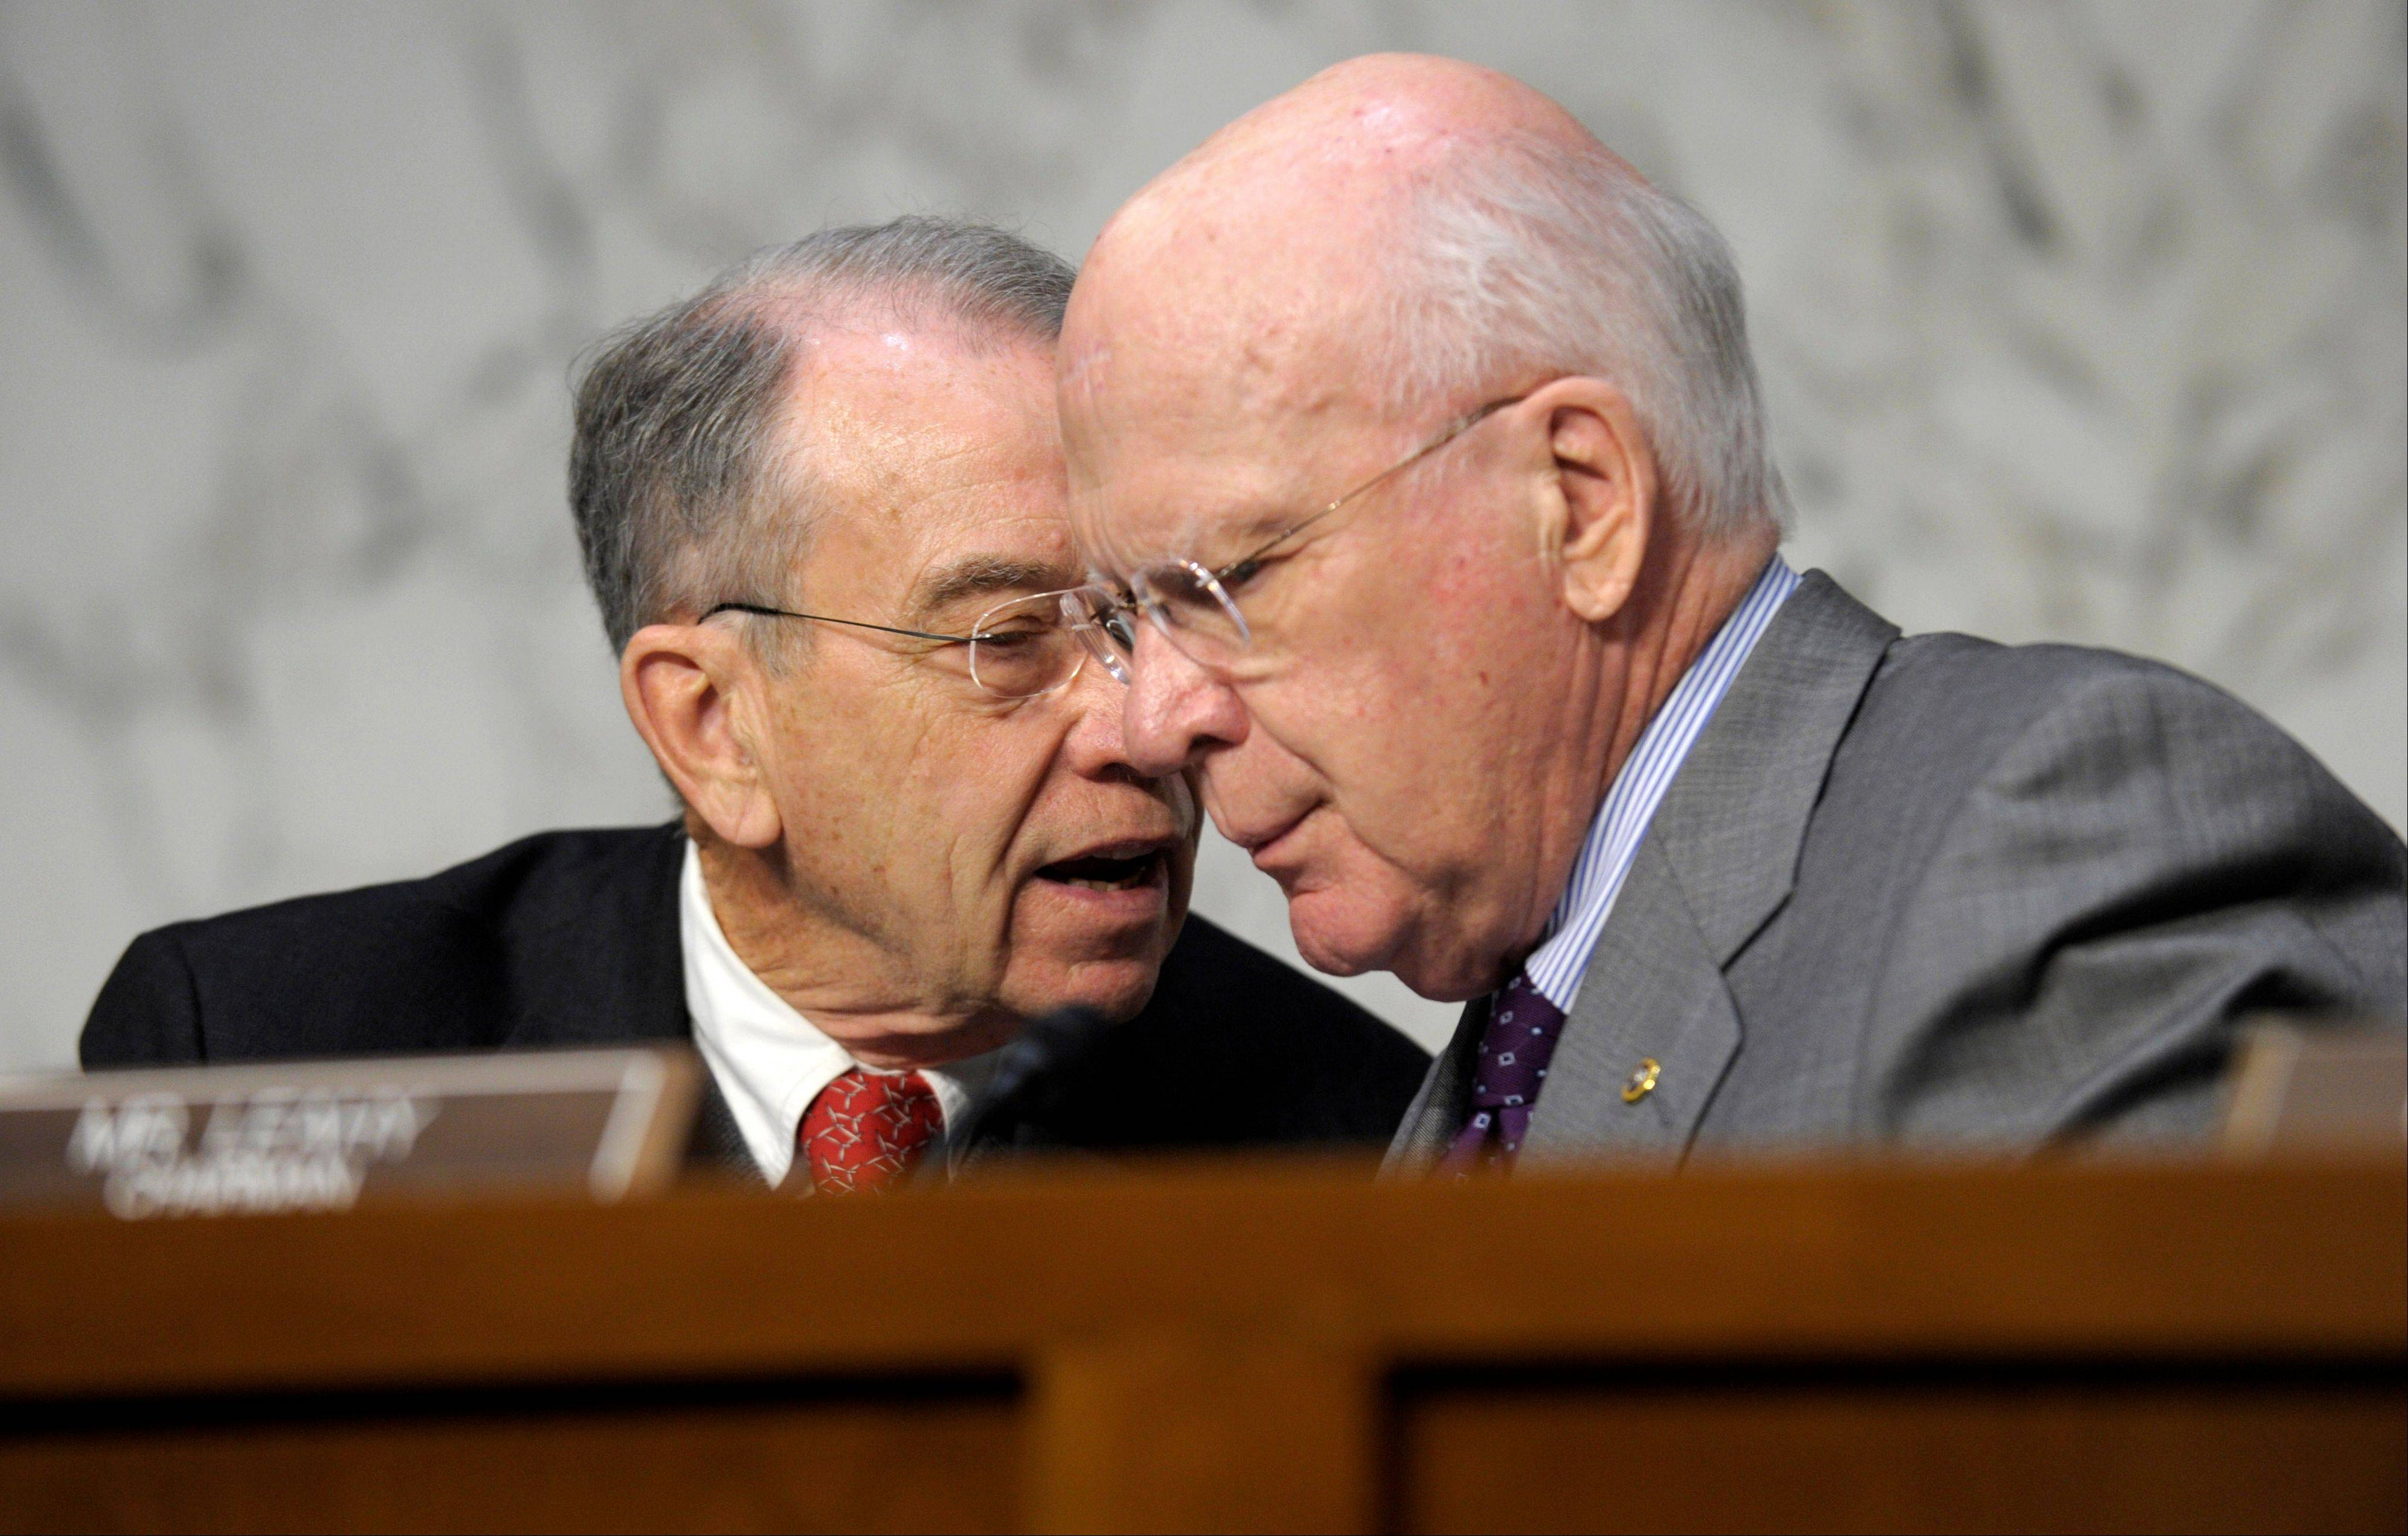 The Senate Judiciary Committee, led by chairman Patrick Leahy, right, approved legislation Thursday toughening laws against people who illegally buy guns for others as lawmakers cast their first votes in Congress to curb firearms since December�s horrific shootings at a Connecticut elementary school.